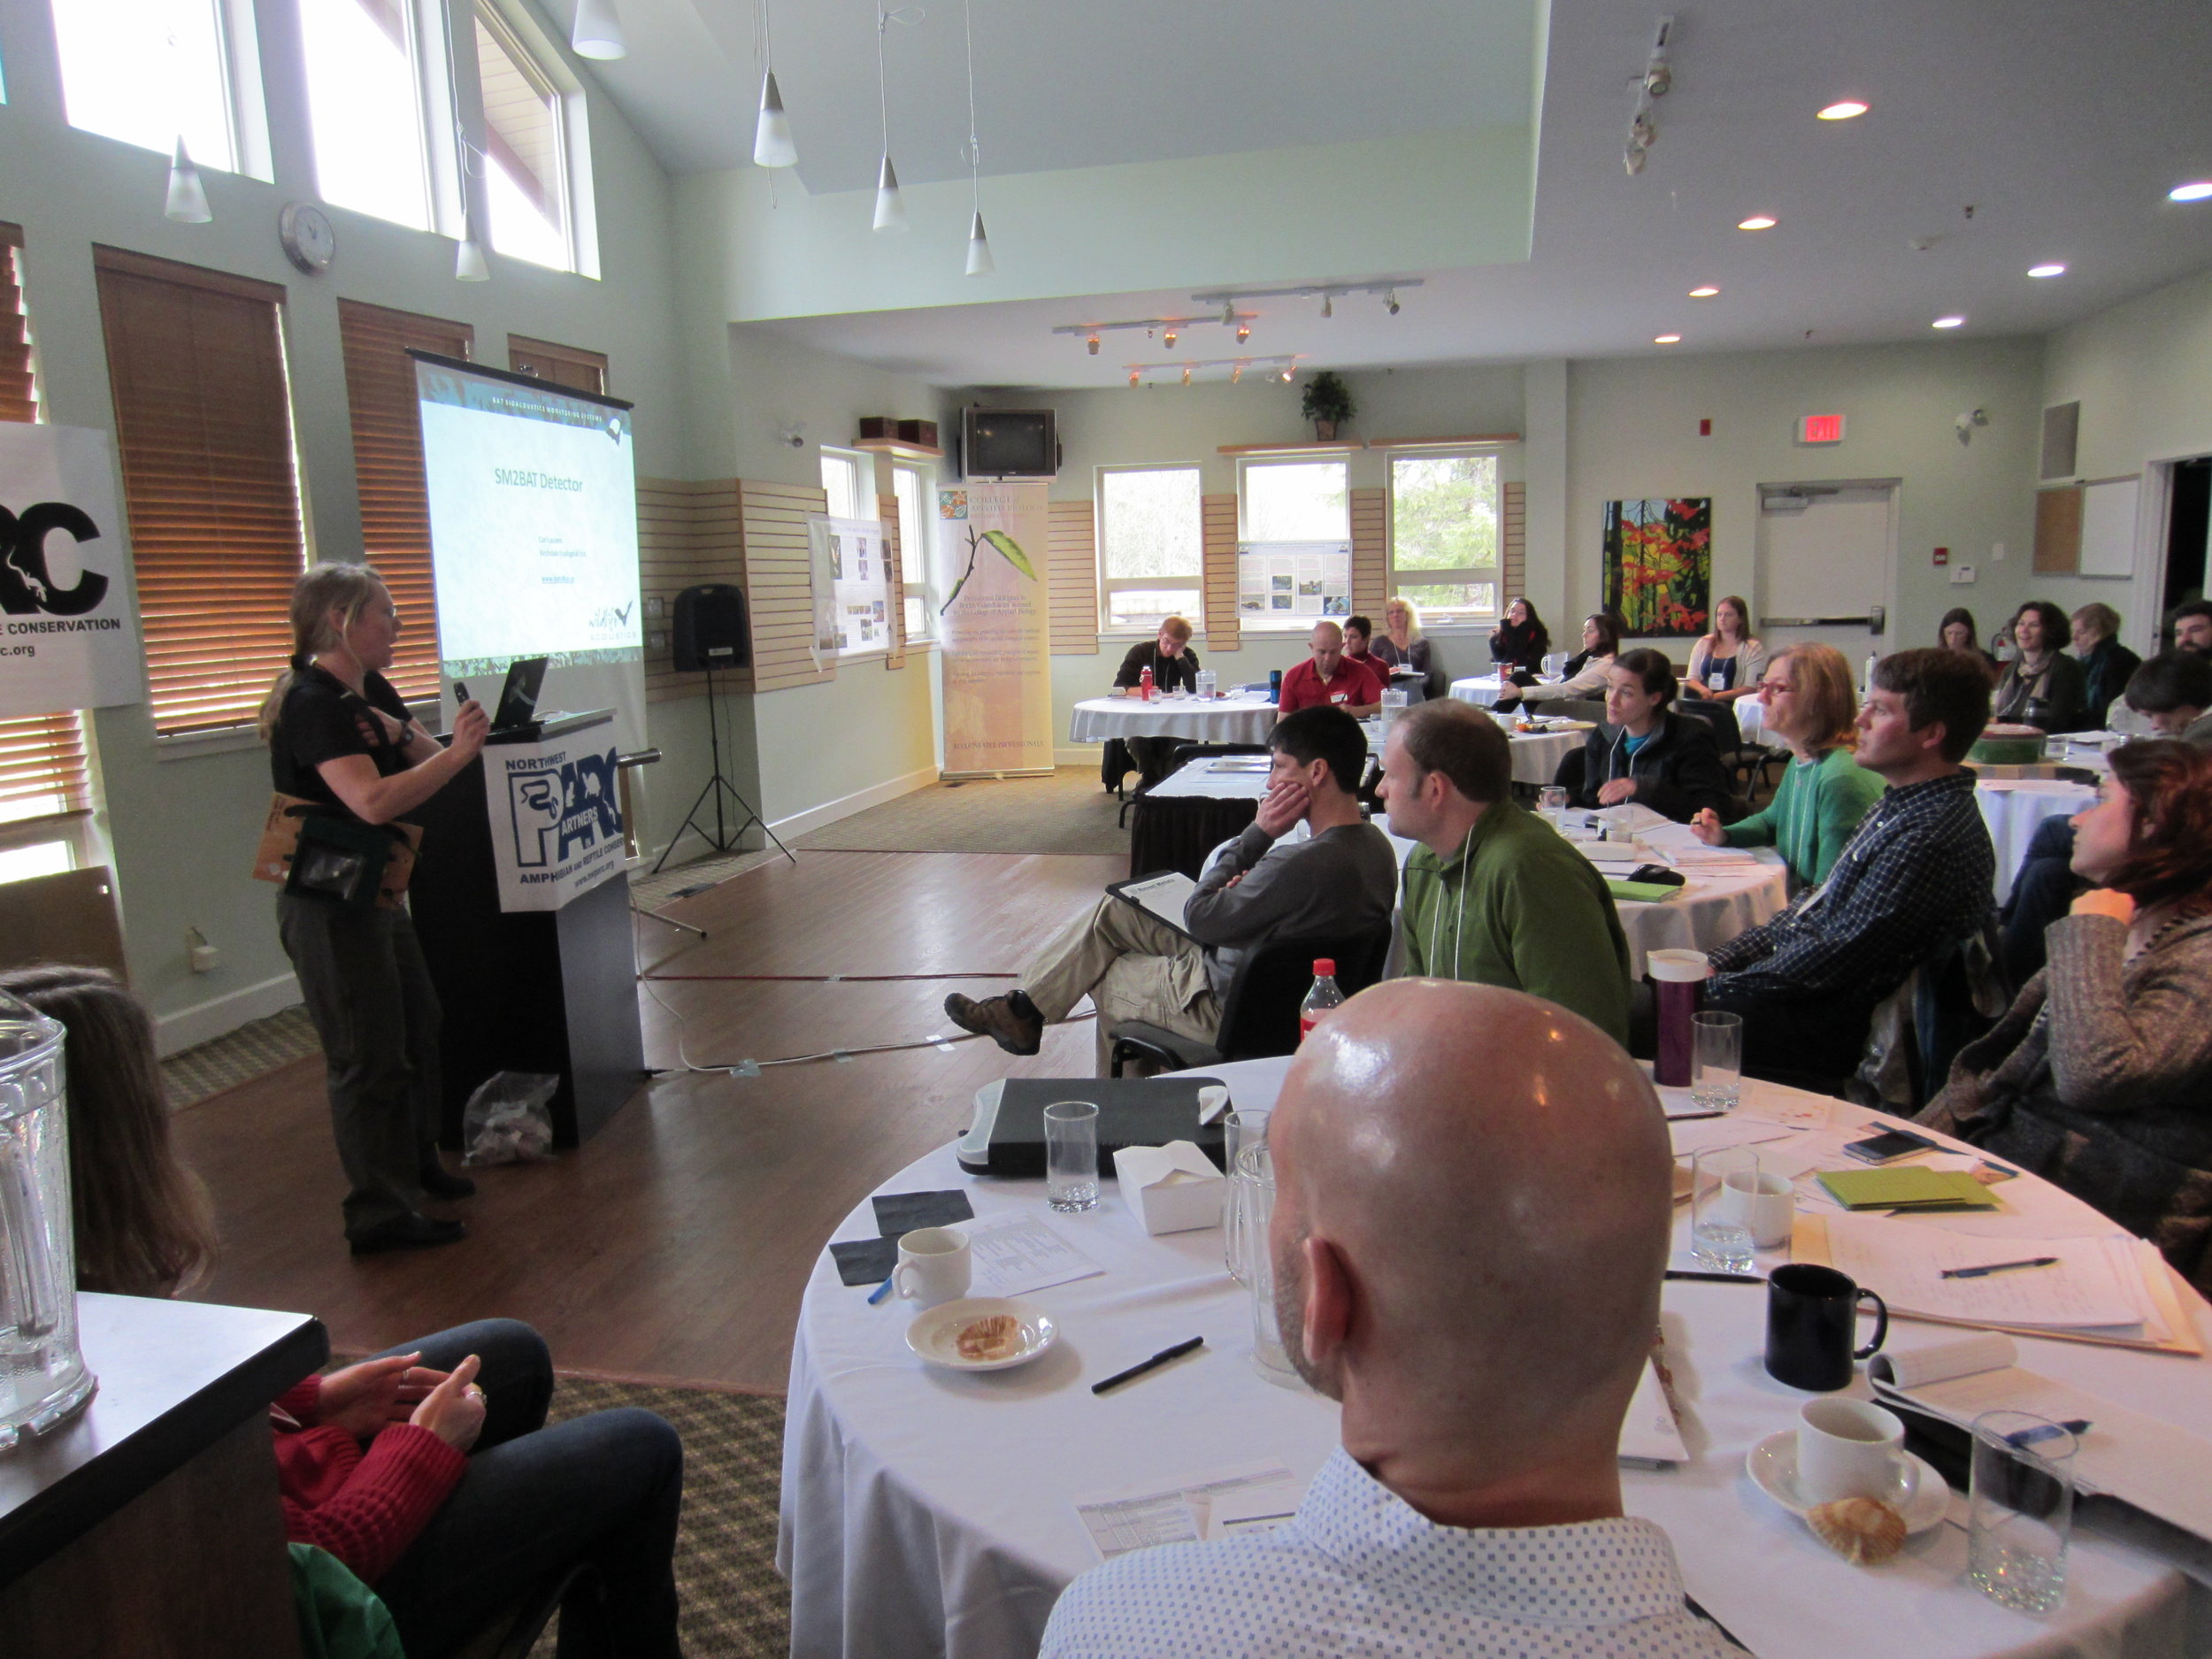 Cori Lauson of Wildlife Conservation Society Canada presenting her work.(Photo by Betsy Howell)